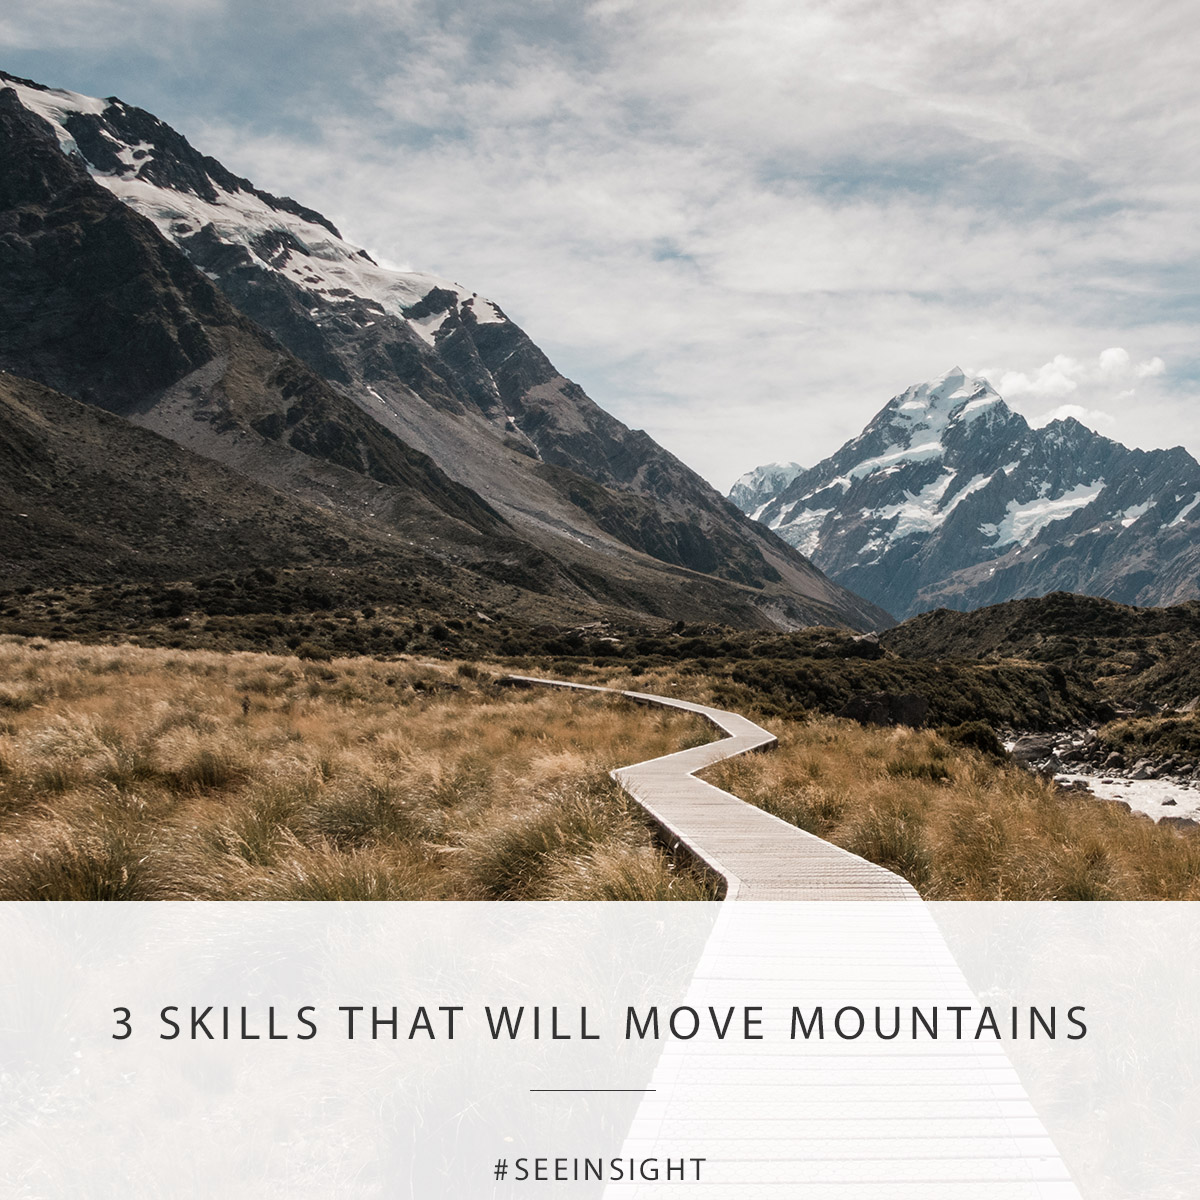 3 Skills That Will Move Mountains